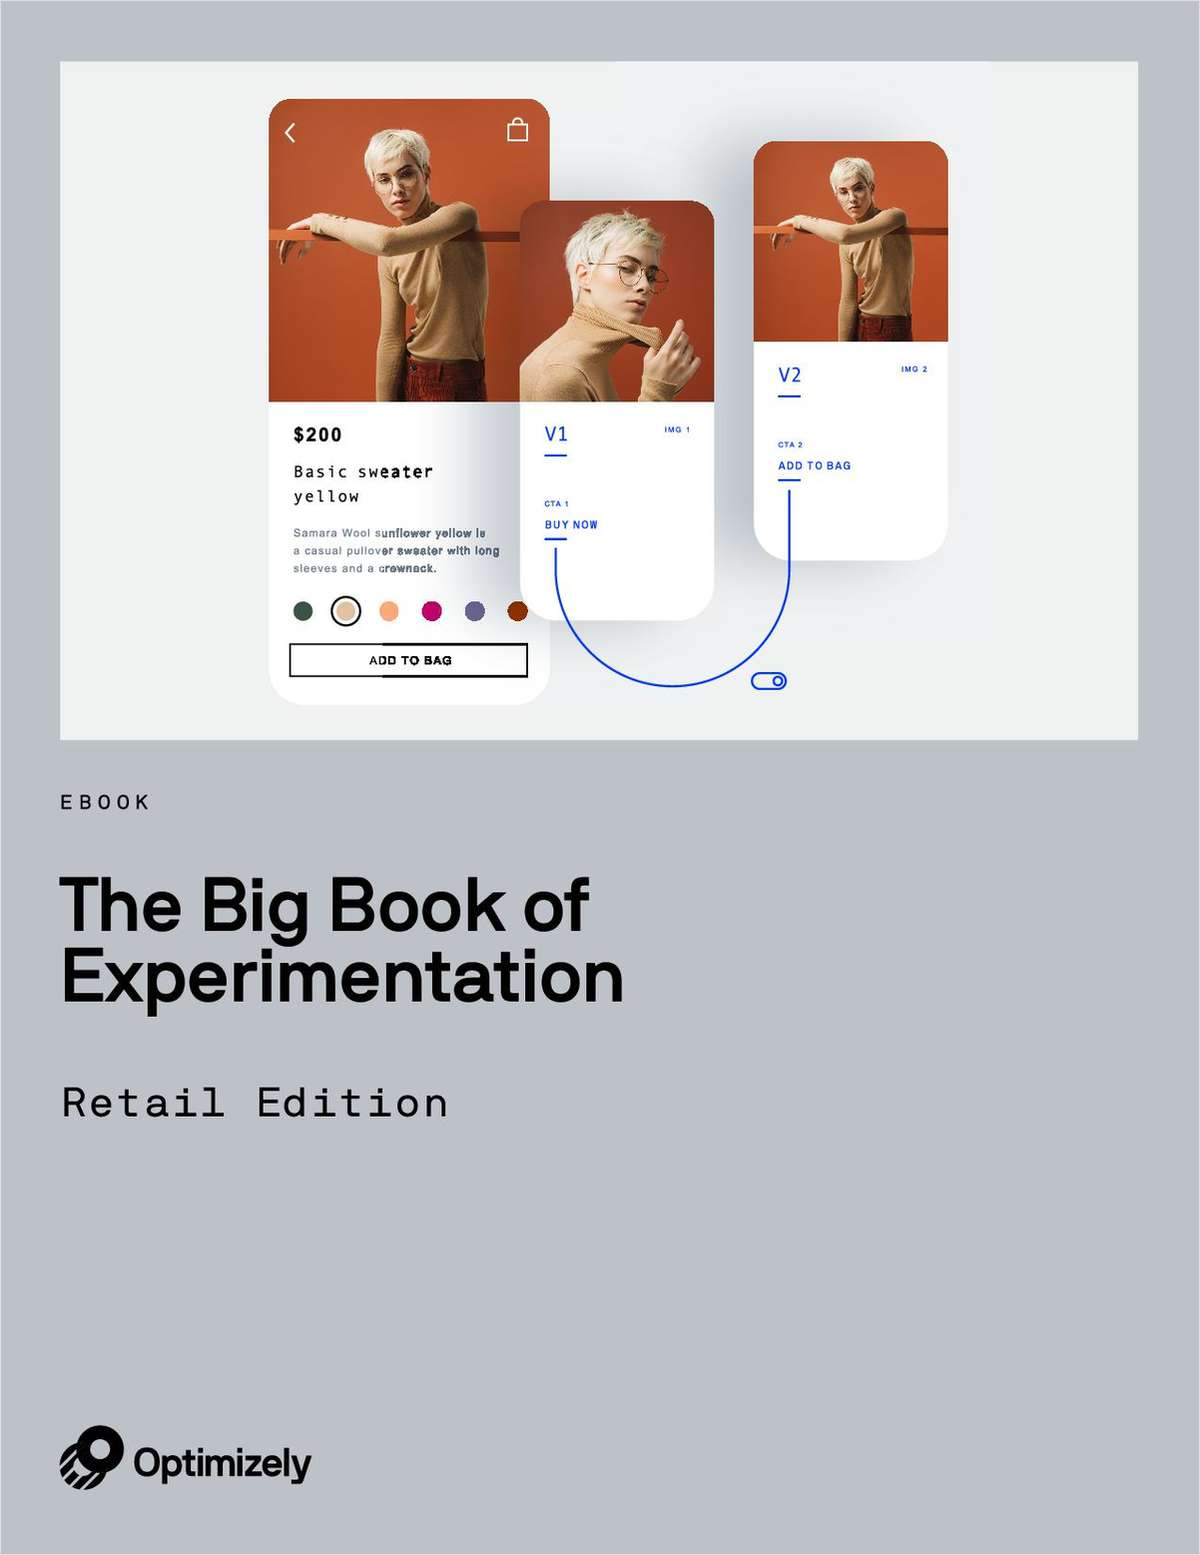 The Big Book of Experimentation: Retail Edition